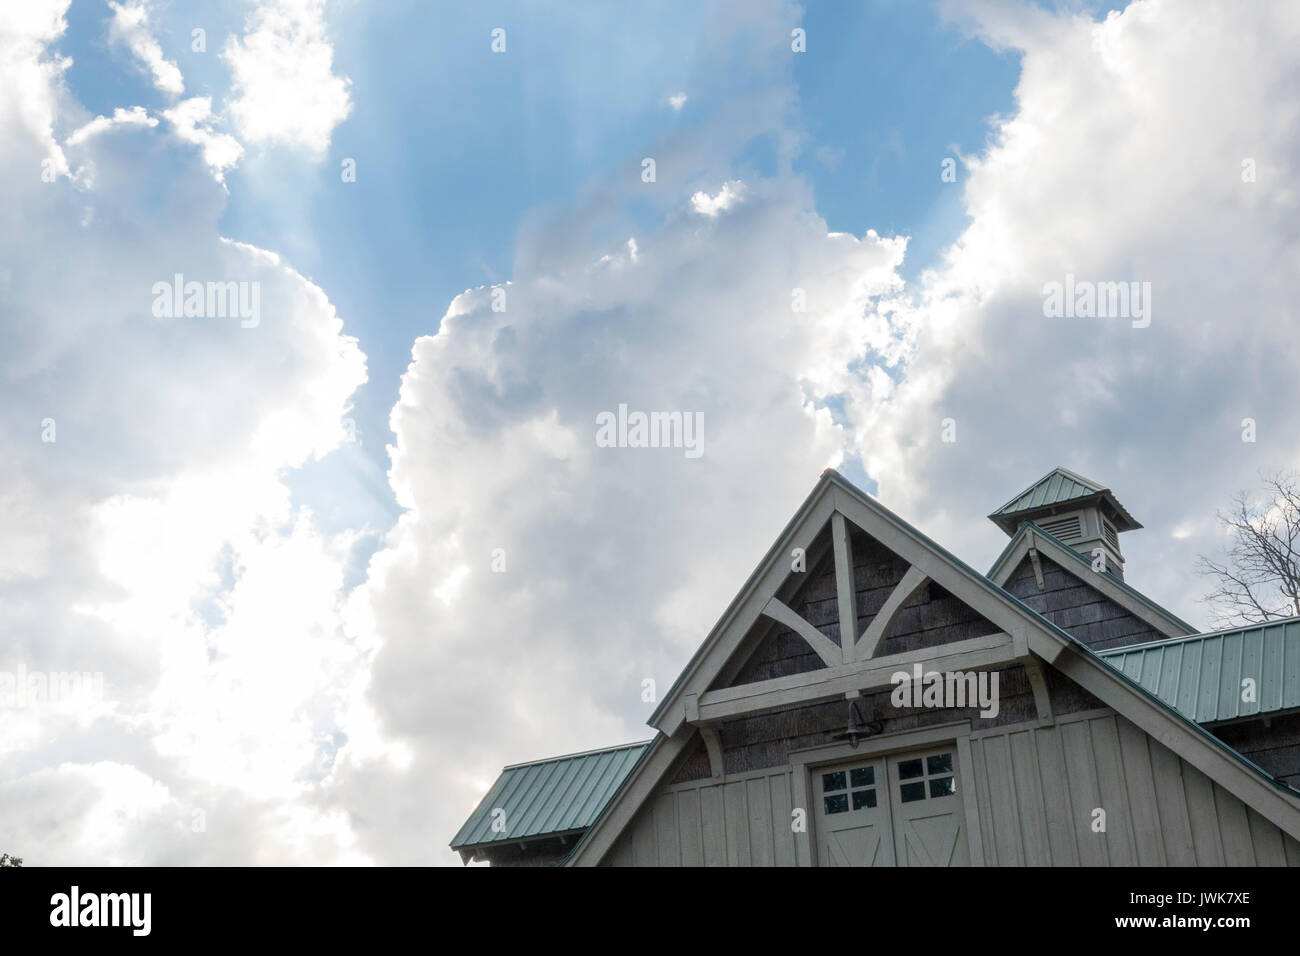 Gable Roof Stock Photos Amp Gable Roof Stock Images Alamy